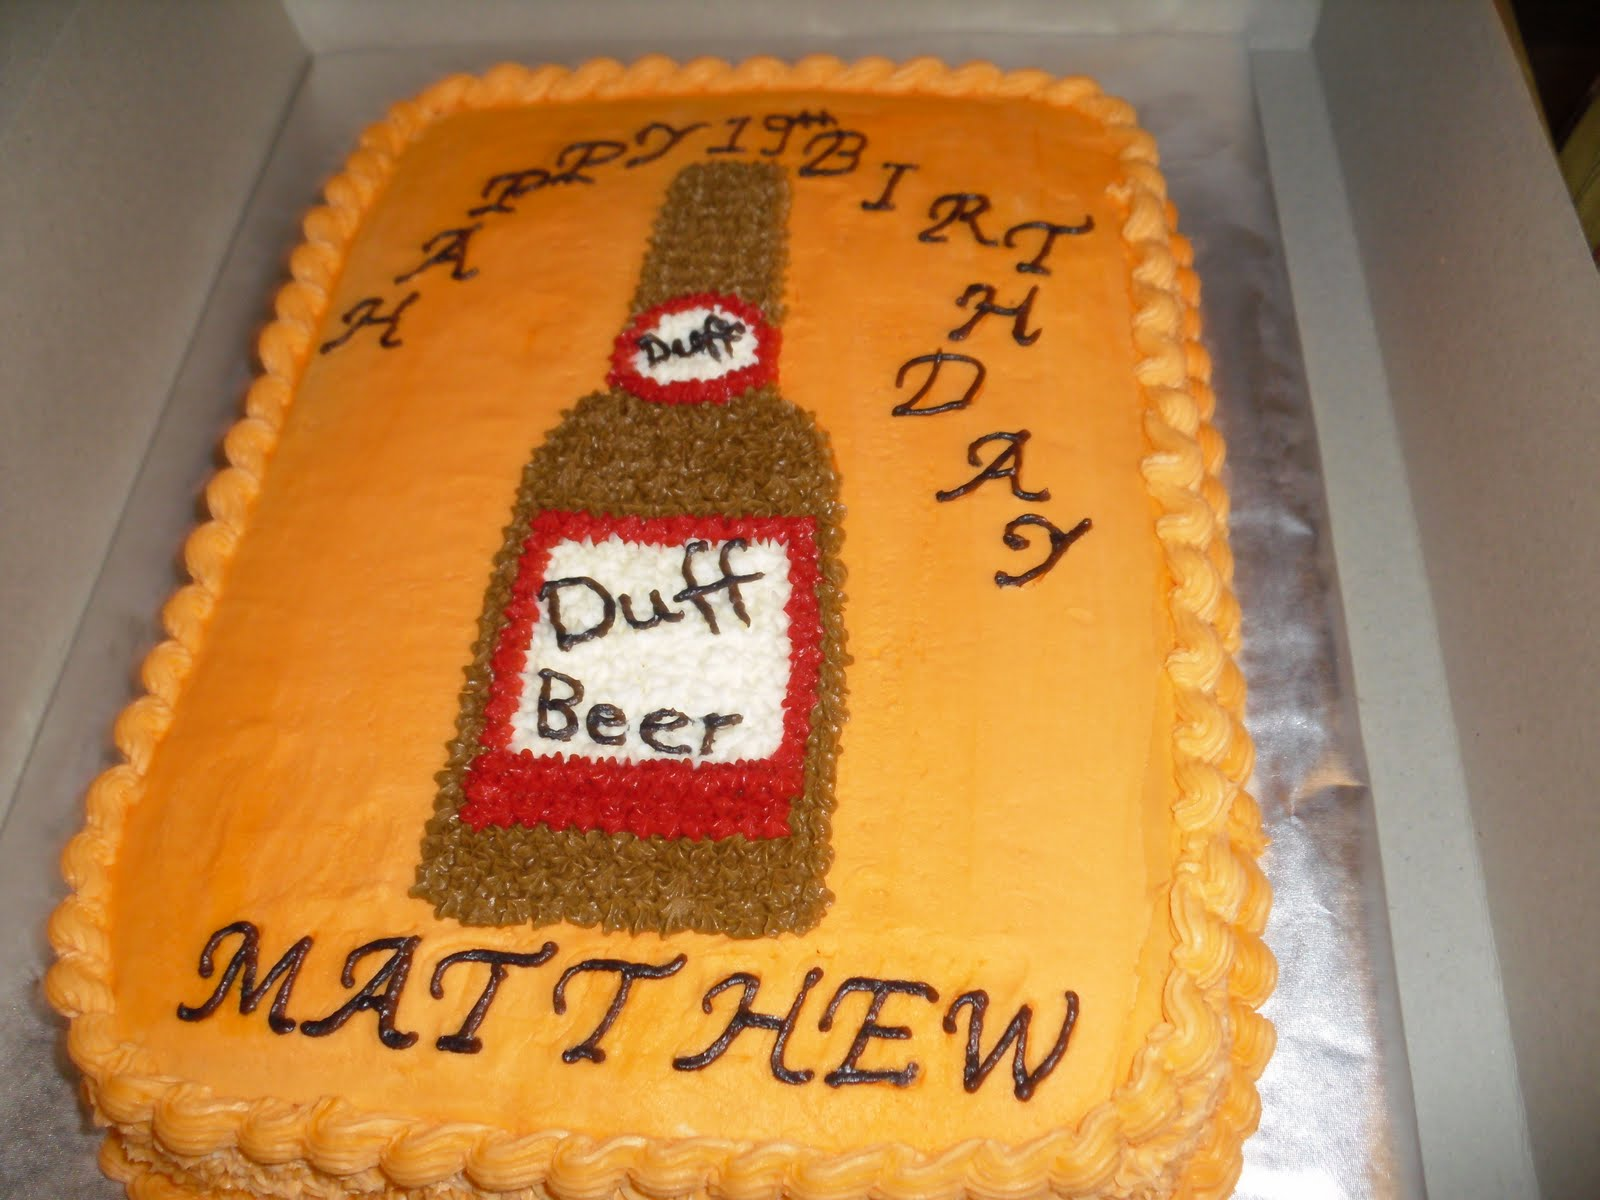 Beer Cake Design Ideas : Cake Designs by Steph: Duff Beer cake.